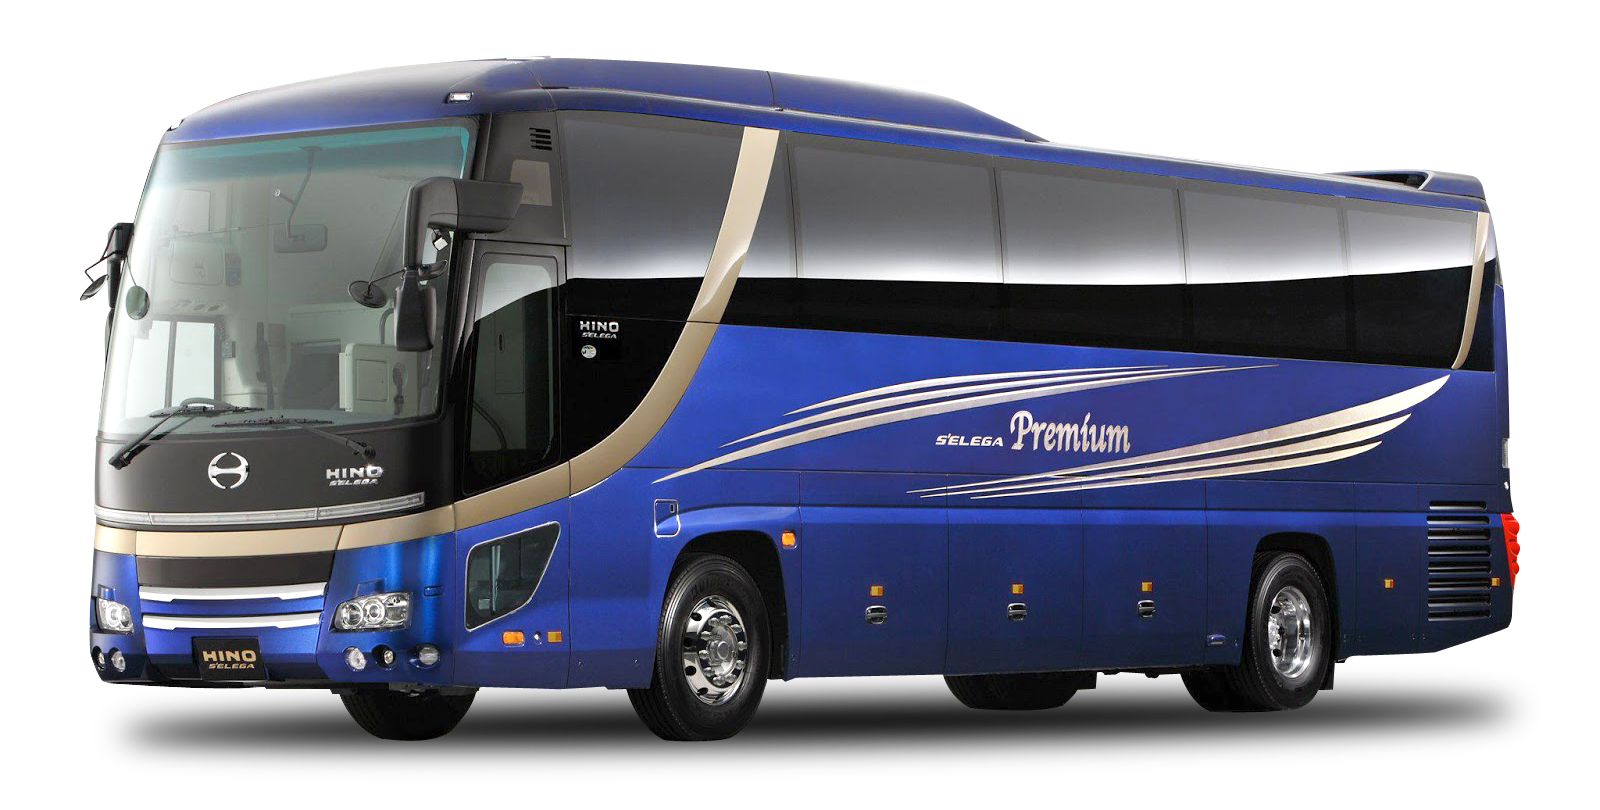 Bus Png image #40026 - Bus PNG